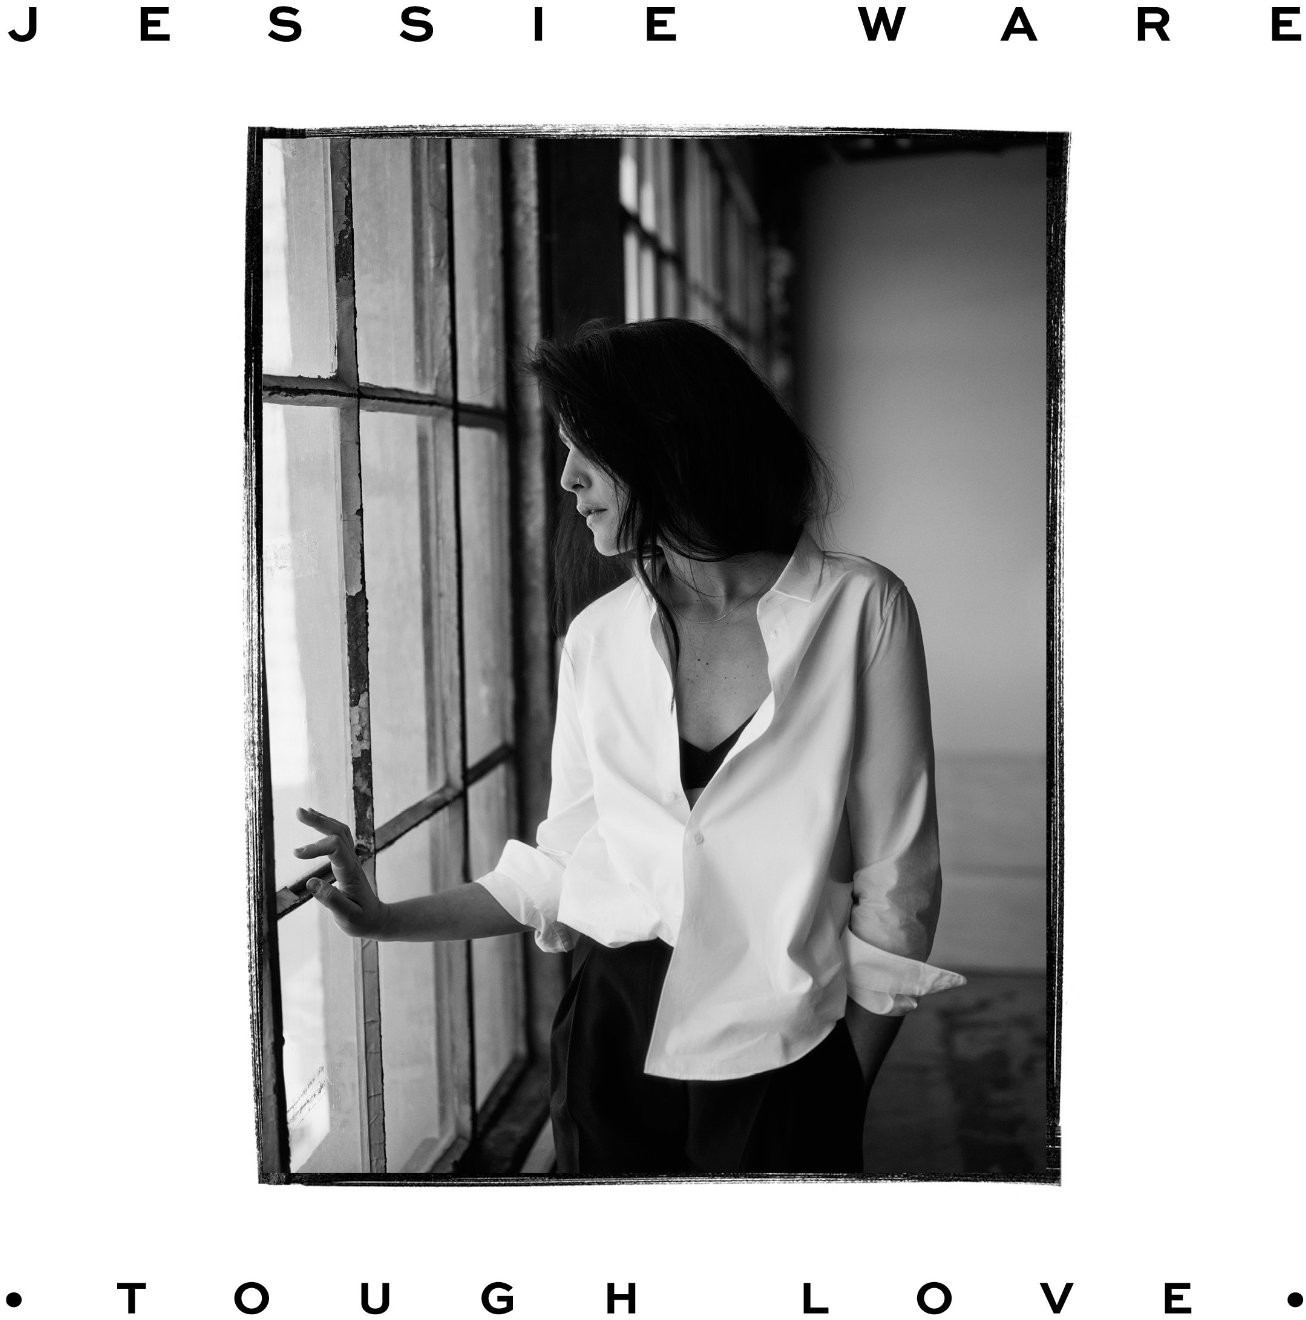 Image of Island Jessie Ware - Tough Love (Vinyl)